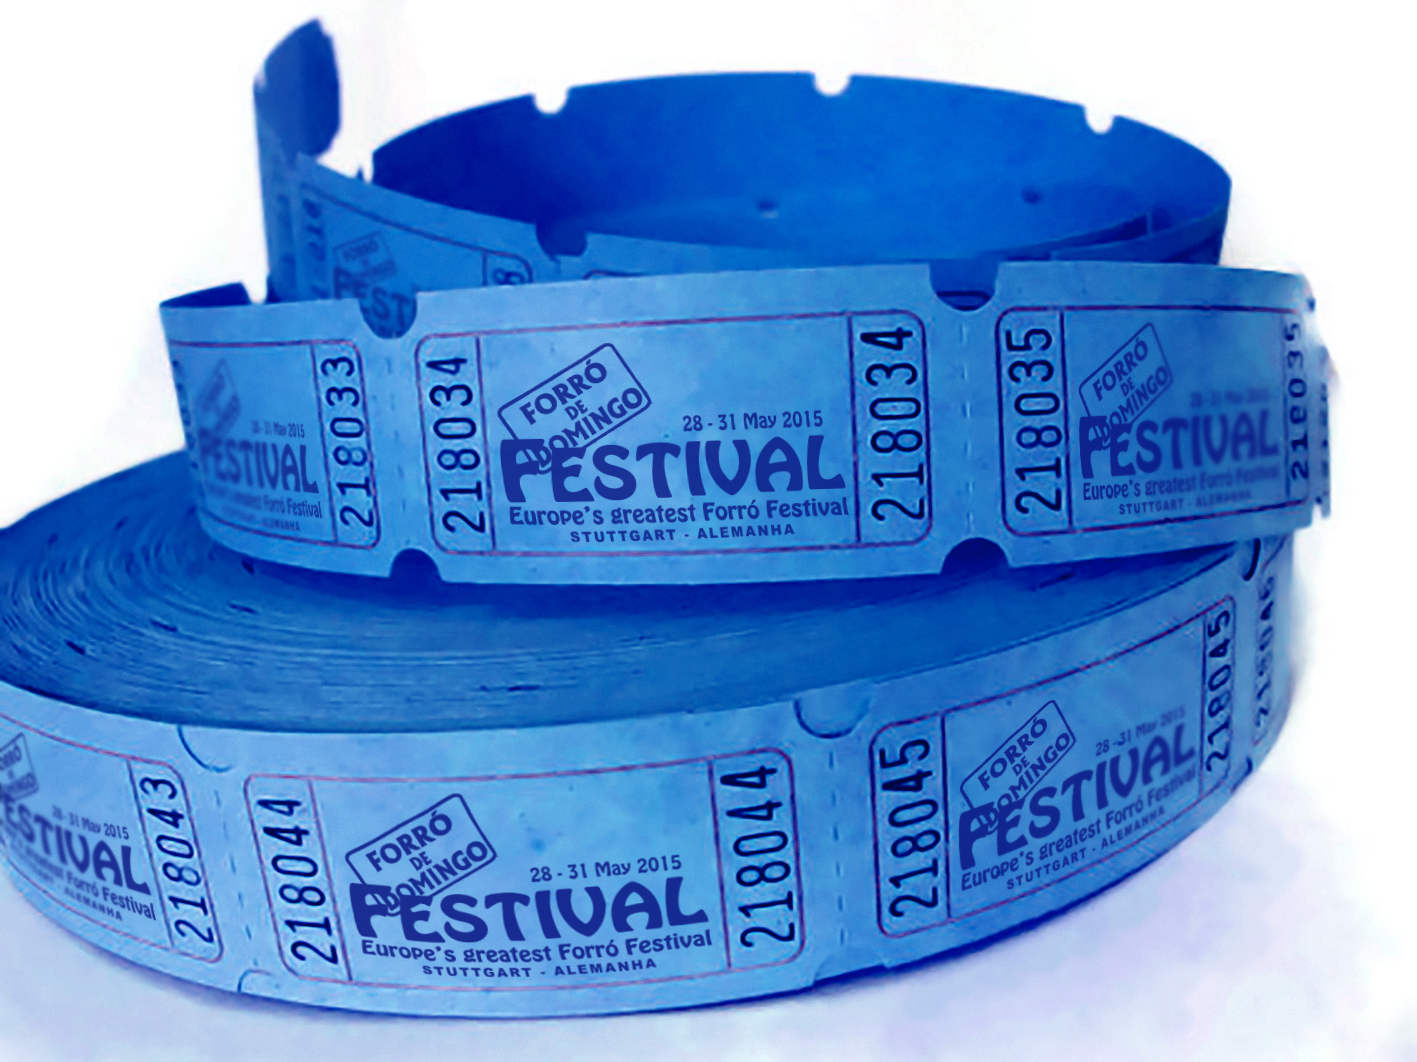 https://forrofestival.com/wp-content/uploads/2015/02/FdD-ticket_3-dias.jpg